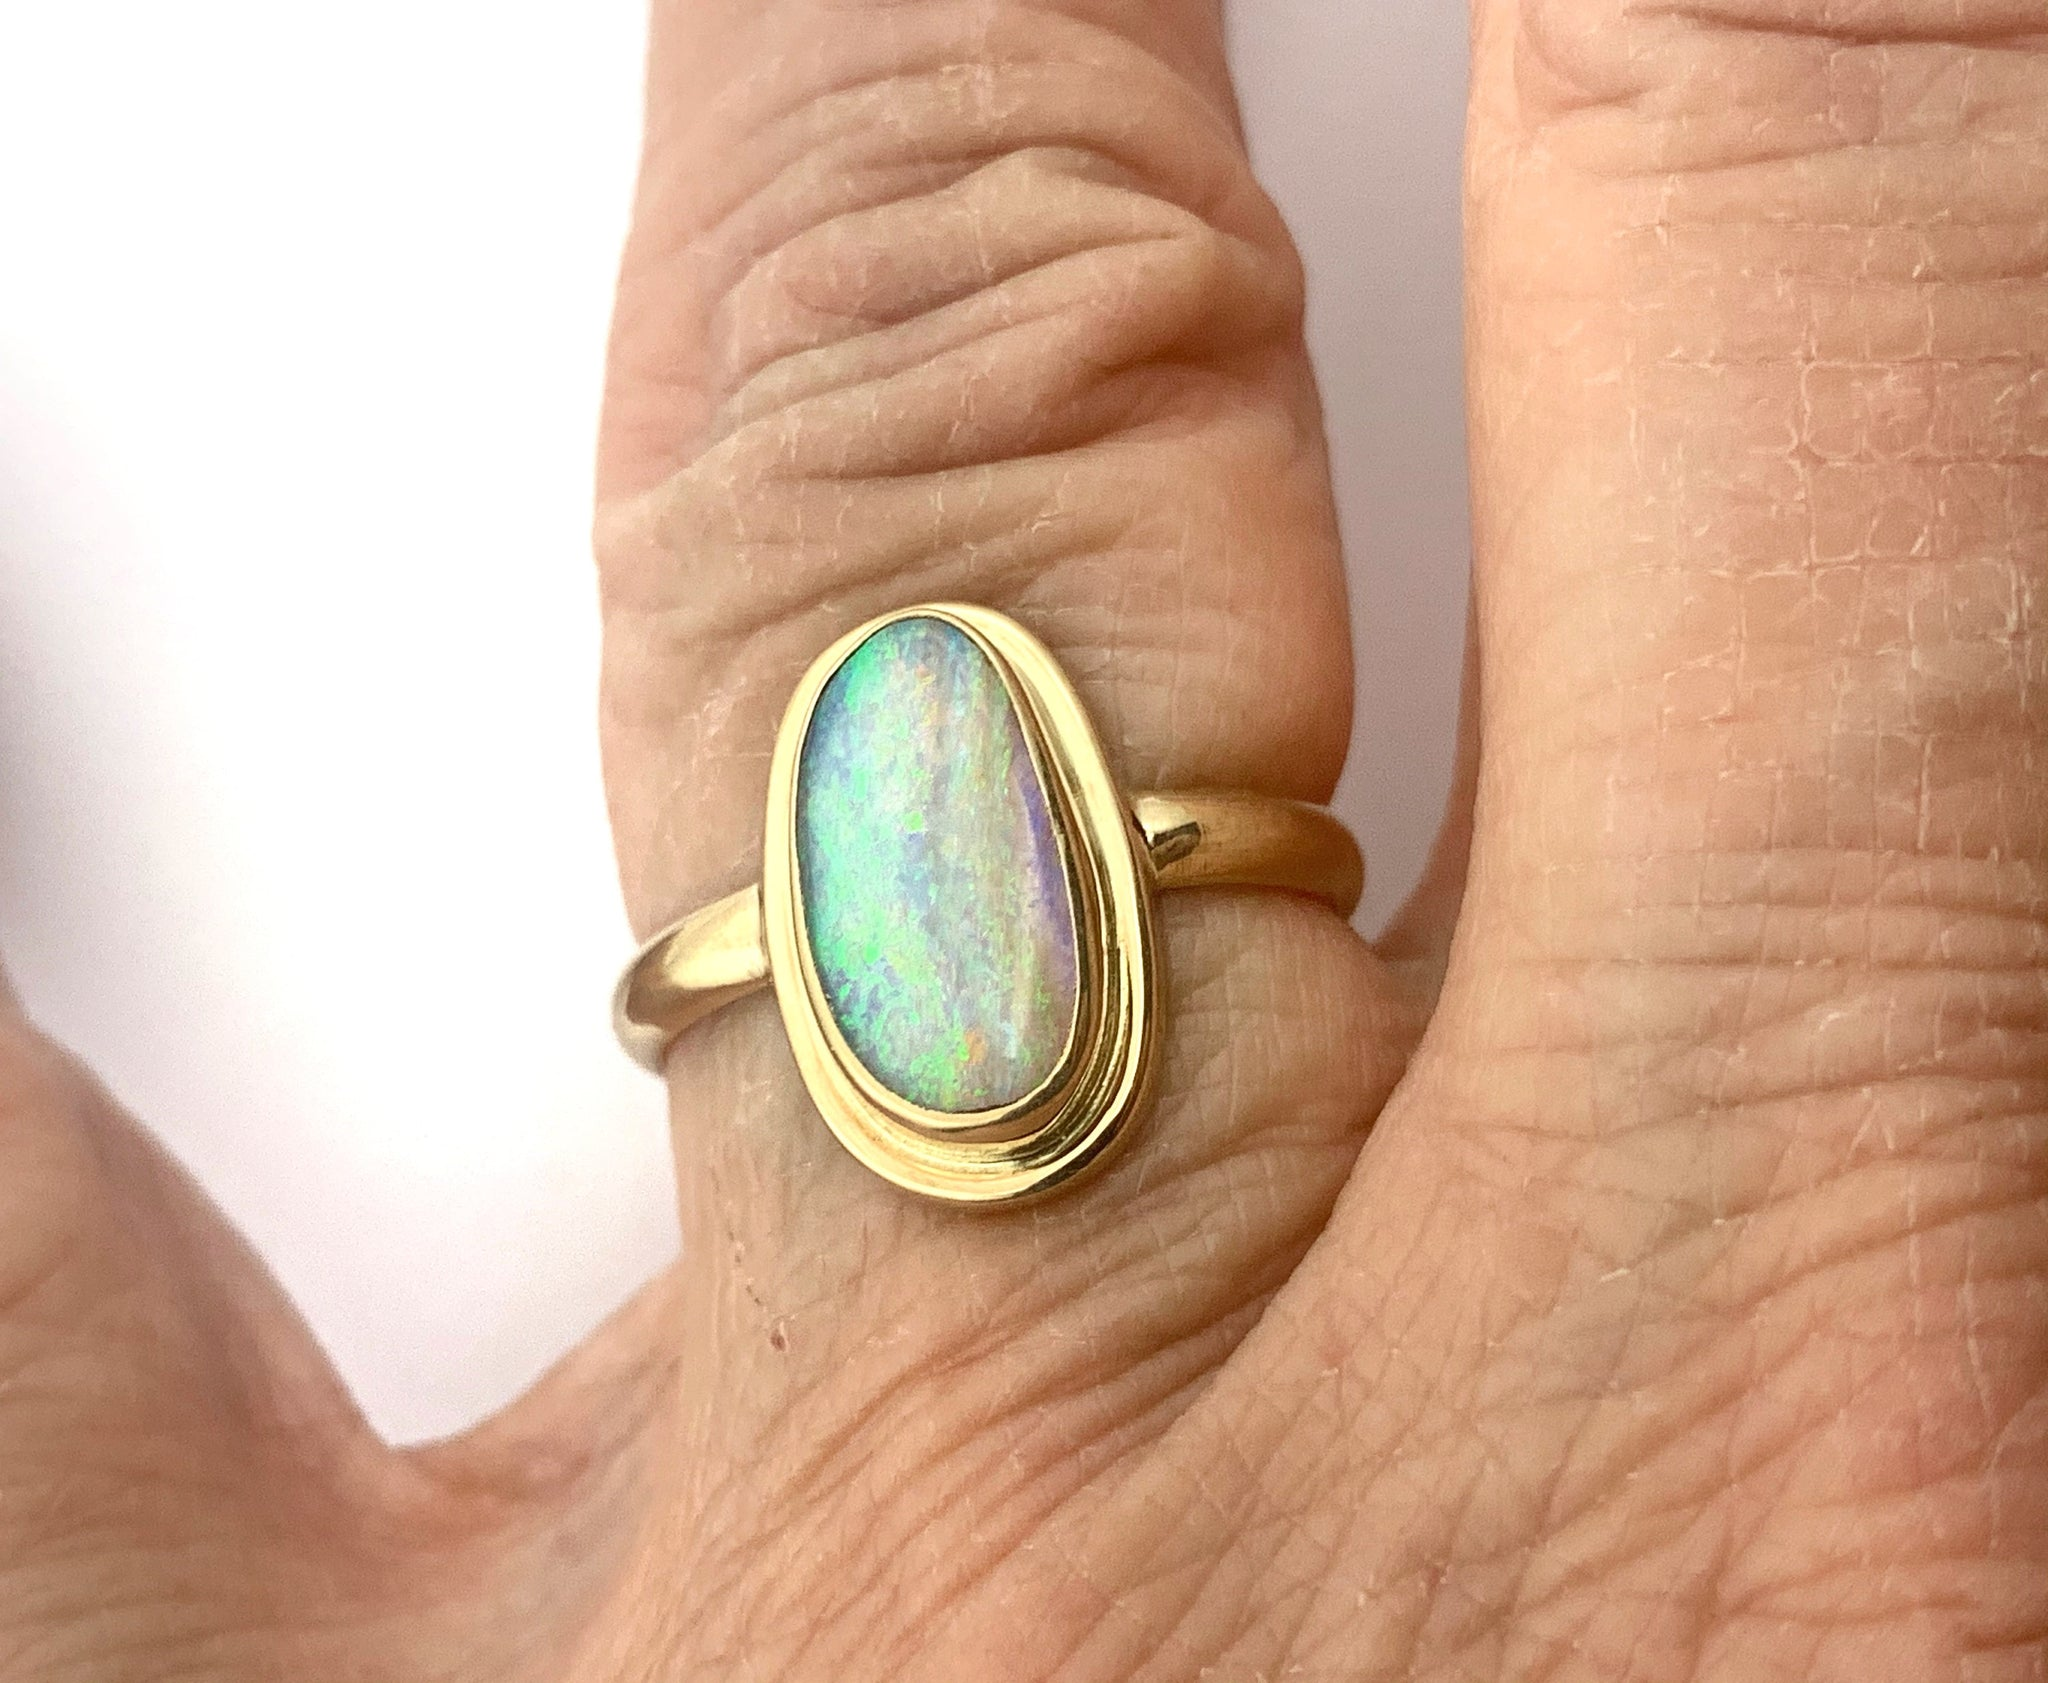 Australian Opal Gold Ring, Solid Opal in 14k, OOAK Statement Ring In Gold, Womens 14k Ring, October Birthday Present, Ladies Opal Jewelry